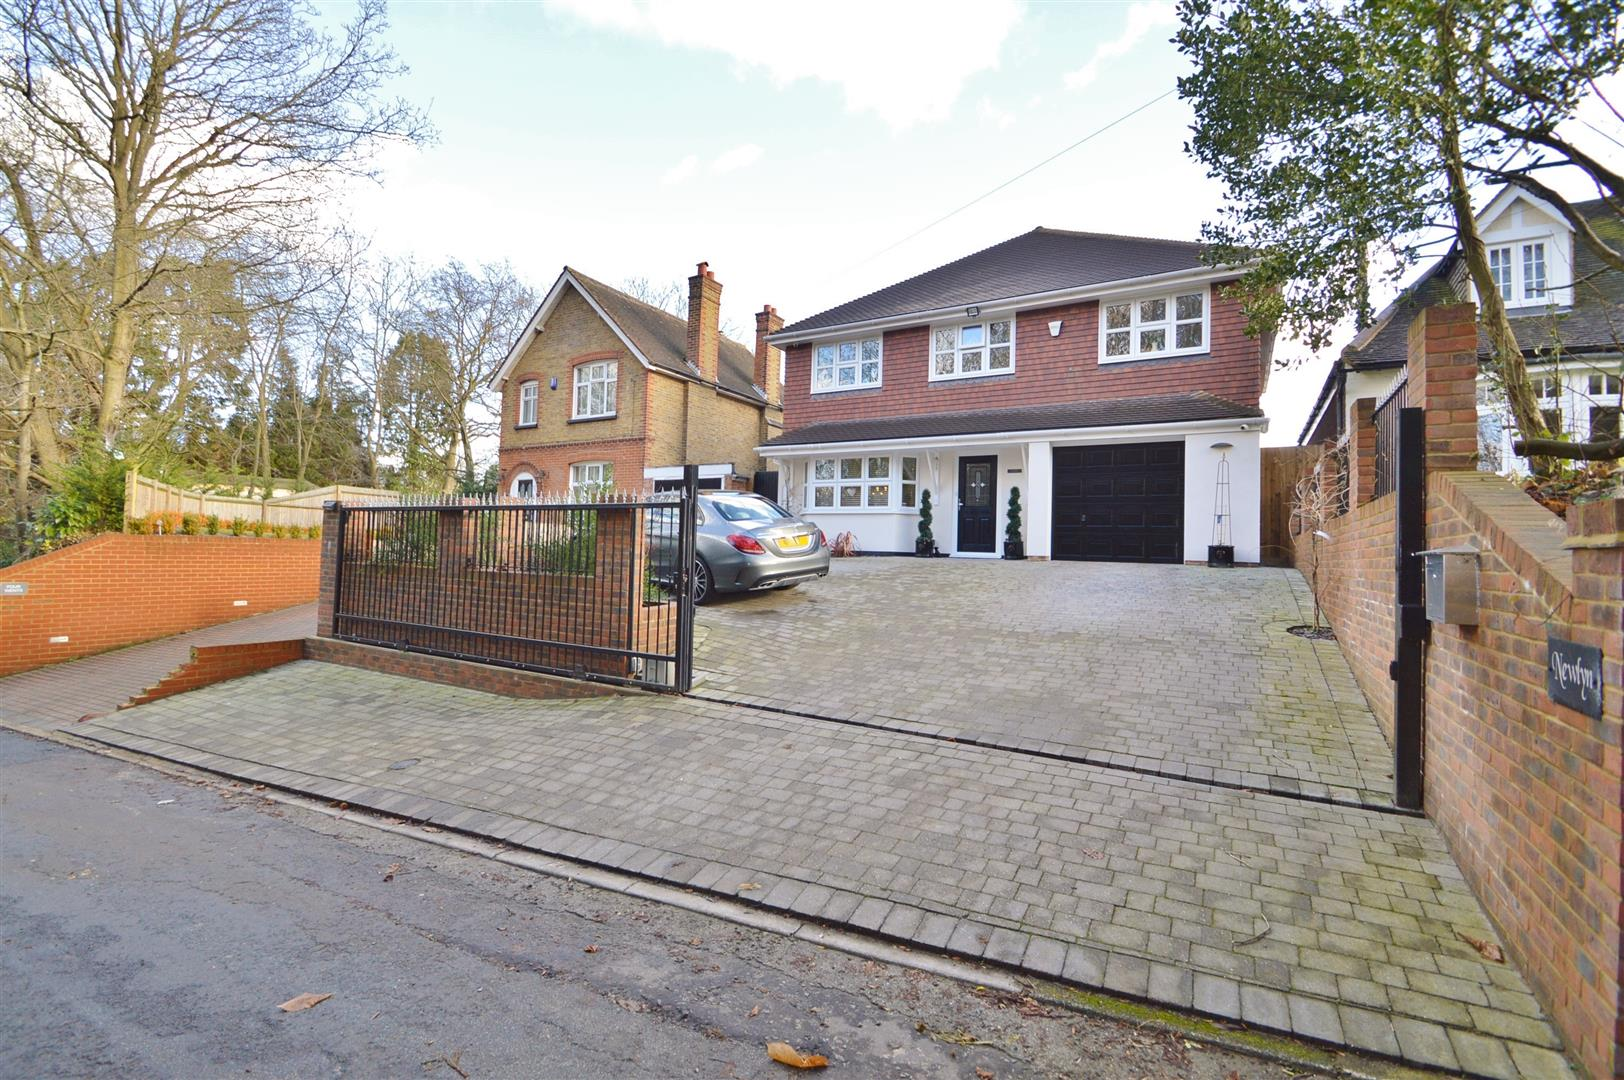 4 Bedrooms Detached House for sale in Weavering Street, Weavering